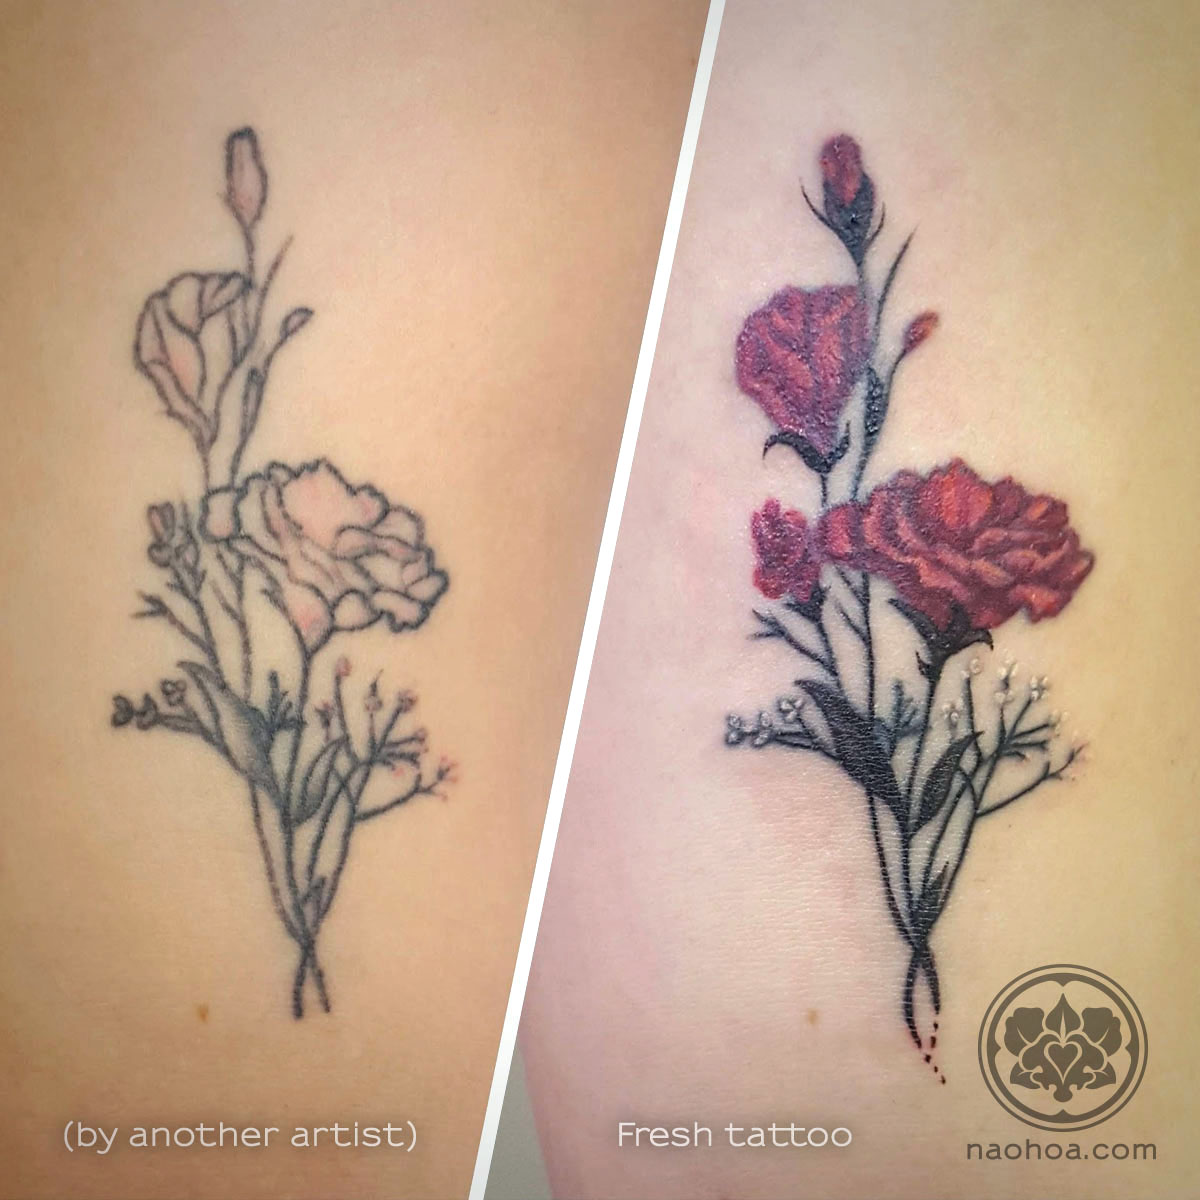 Before-and-after photo of a tattoo with carnations and baby's breath flowers. Reworked by Naomi Hoang at NAOHOA Luxury Bespoke Tattoos, Cardiff (Wales, UK)